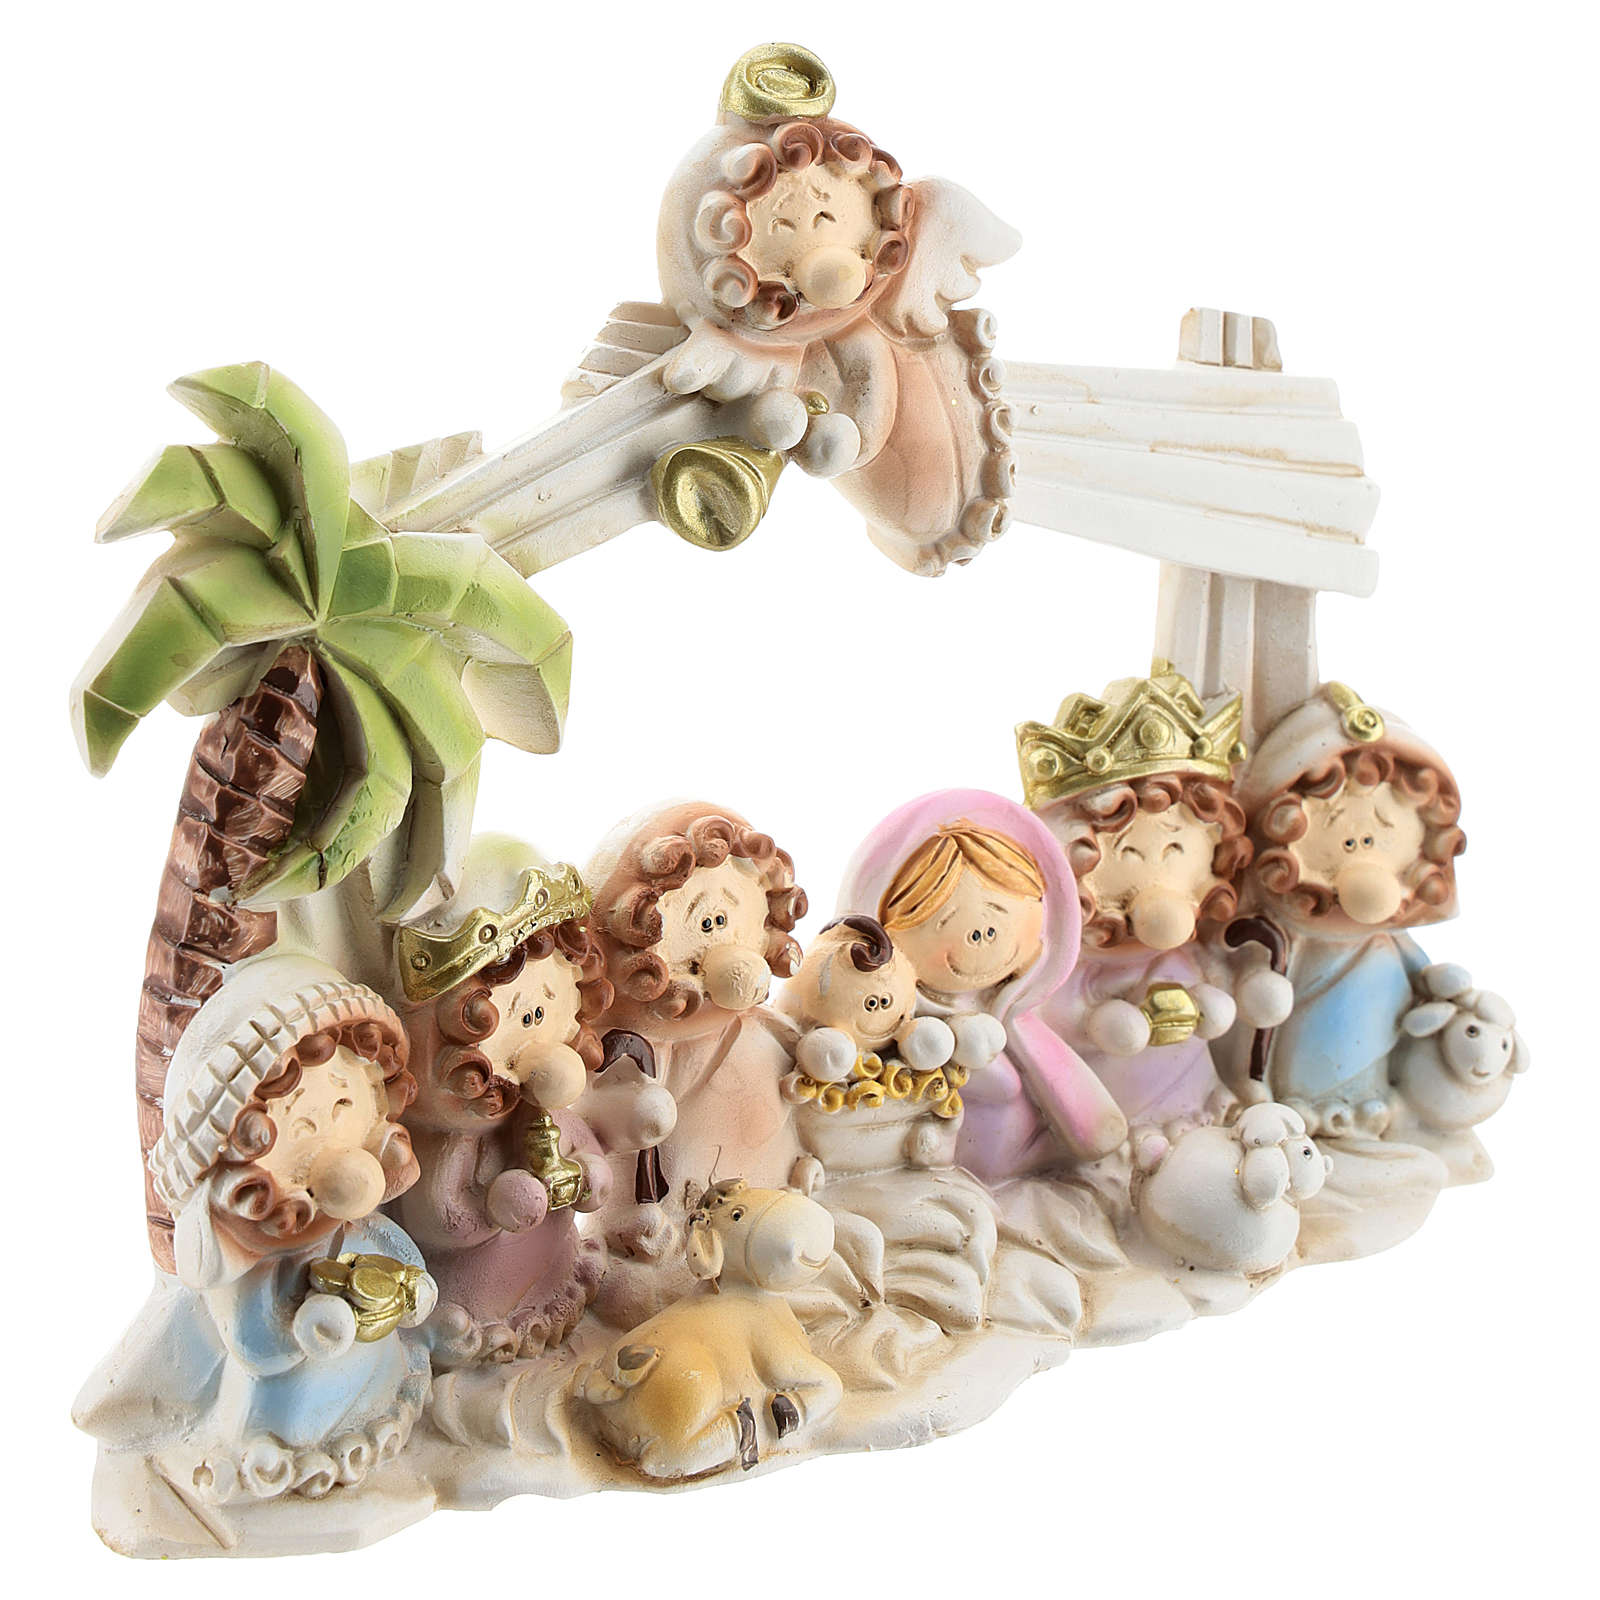 Nativity scene with hut made of resin with 10 characters 16x12 cm, children's line 4